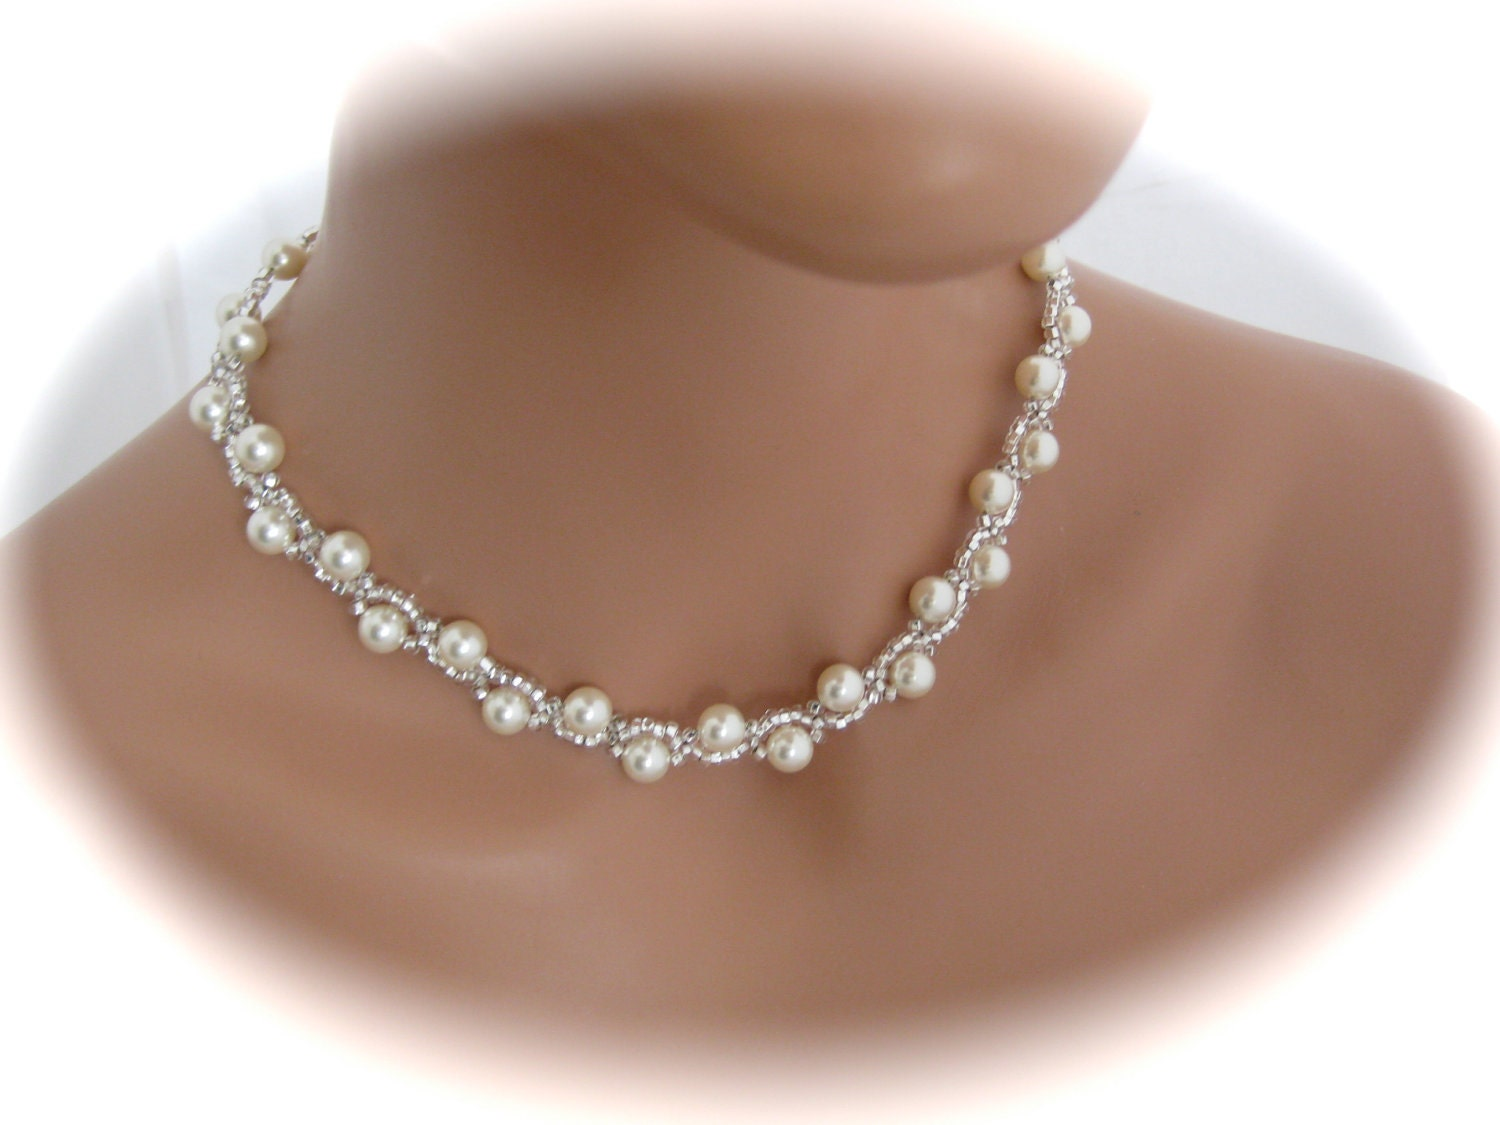 Wedding Jewelry  Swarovski Pearl Necklace  by Clairesparklesbridal from etsy.com